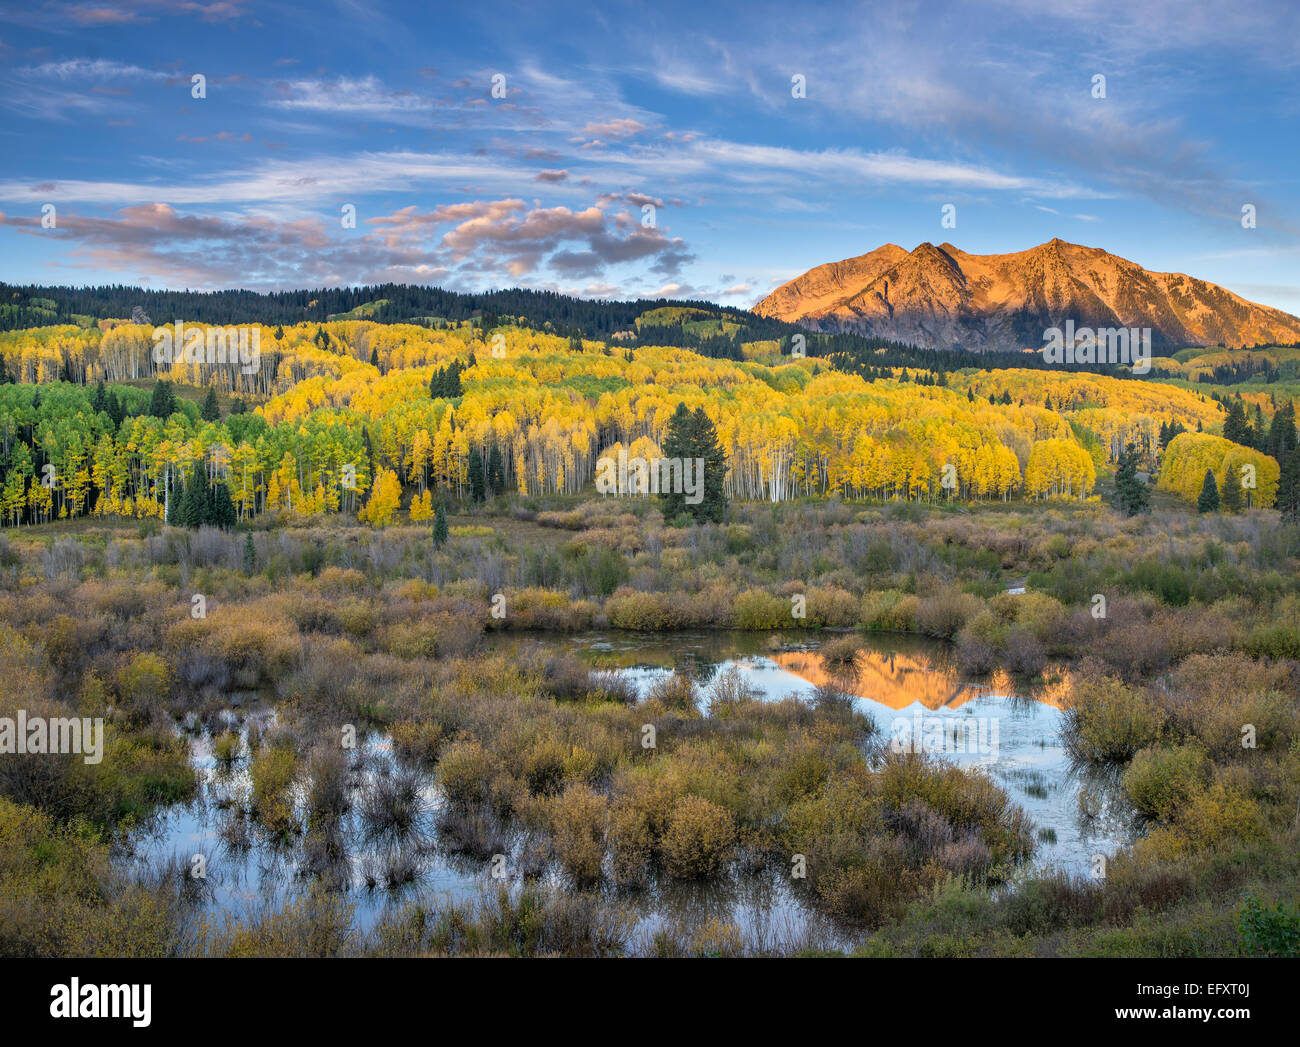 Gunnison National Forest, West Elk Mountains, CO: Sonnenaufgang Licht auf Osten Beckwith Berg, aus einem Biber Teich Stockbild